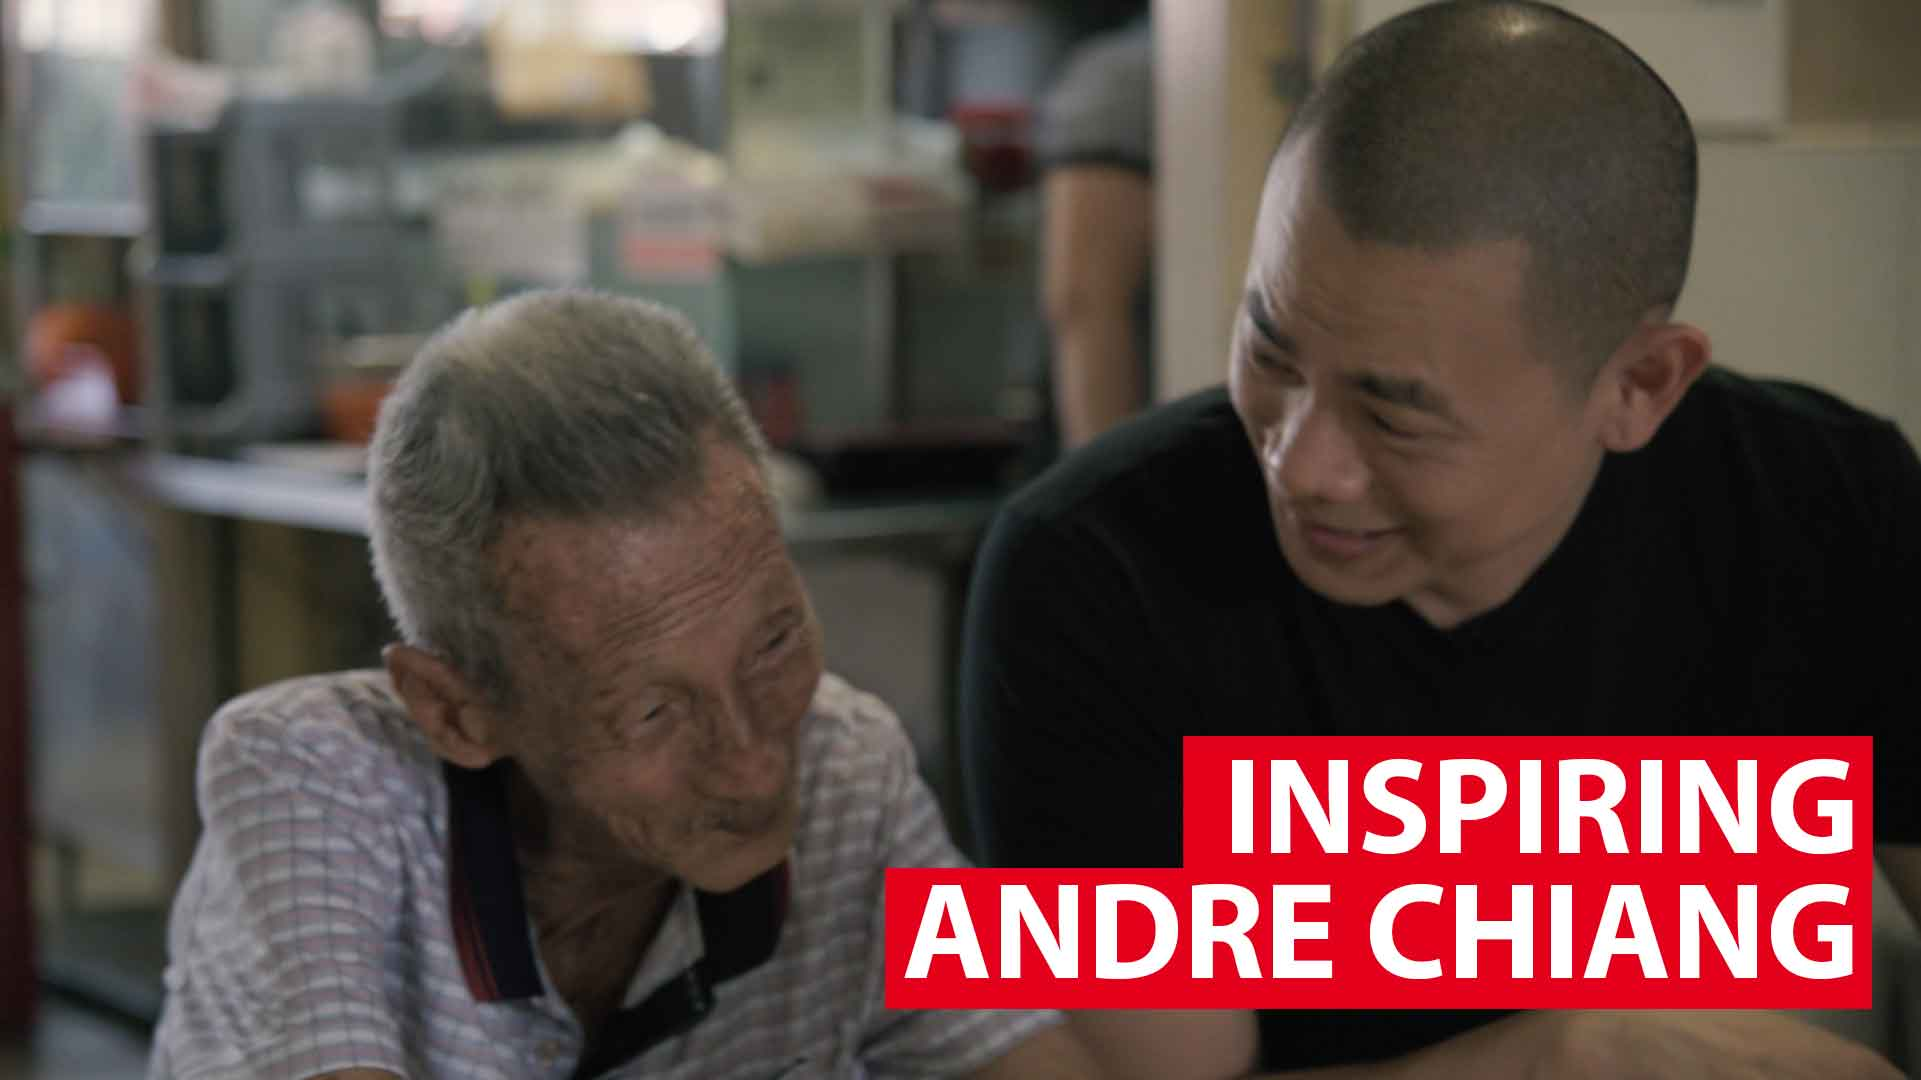 Inspiring Andre Chiang: A Michelin-star chef and an ice-cream uncle